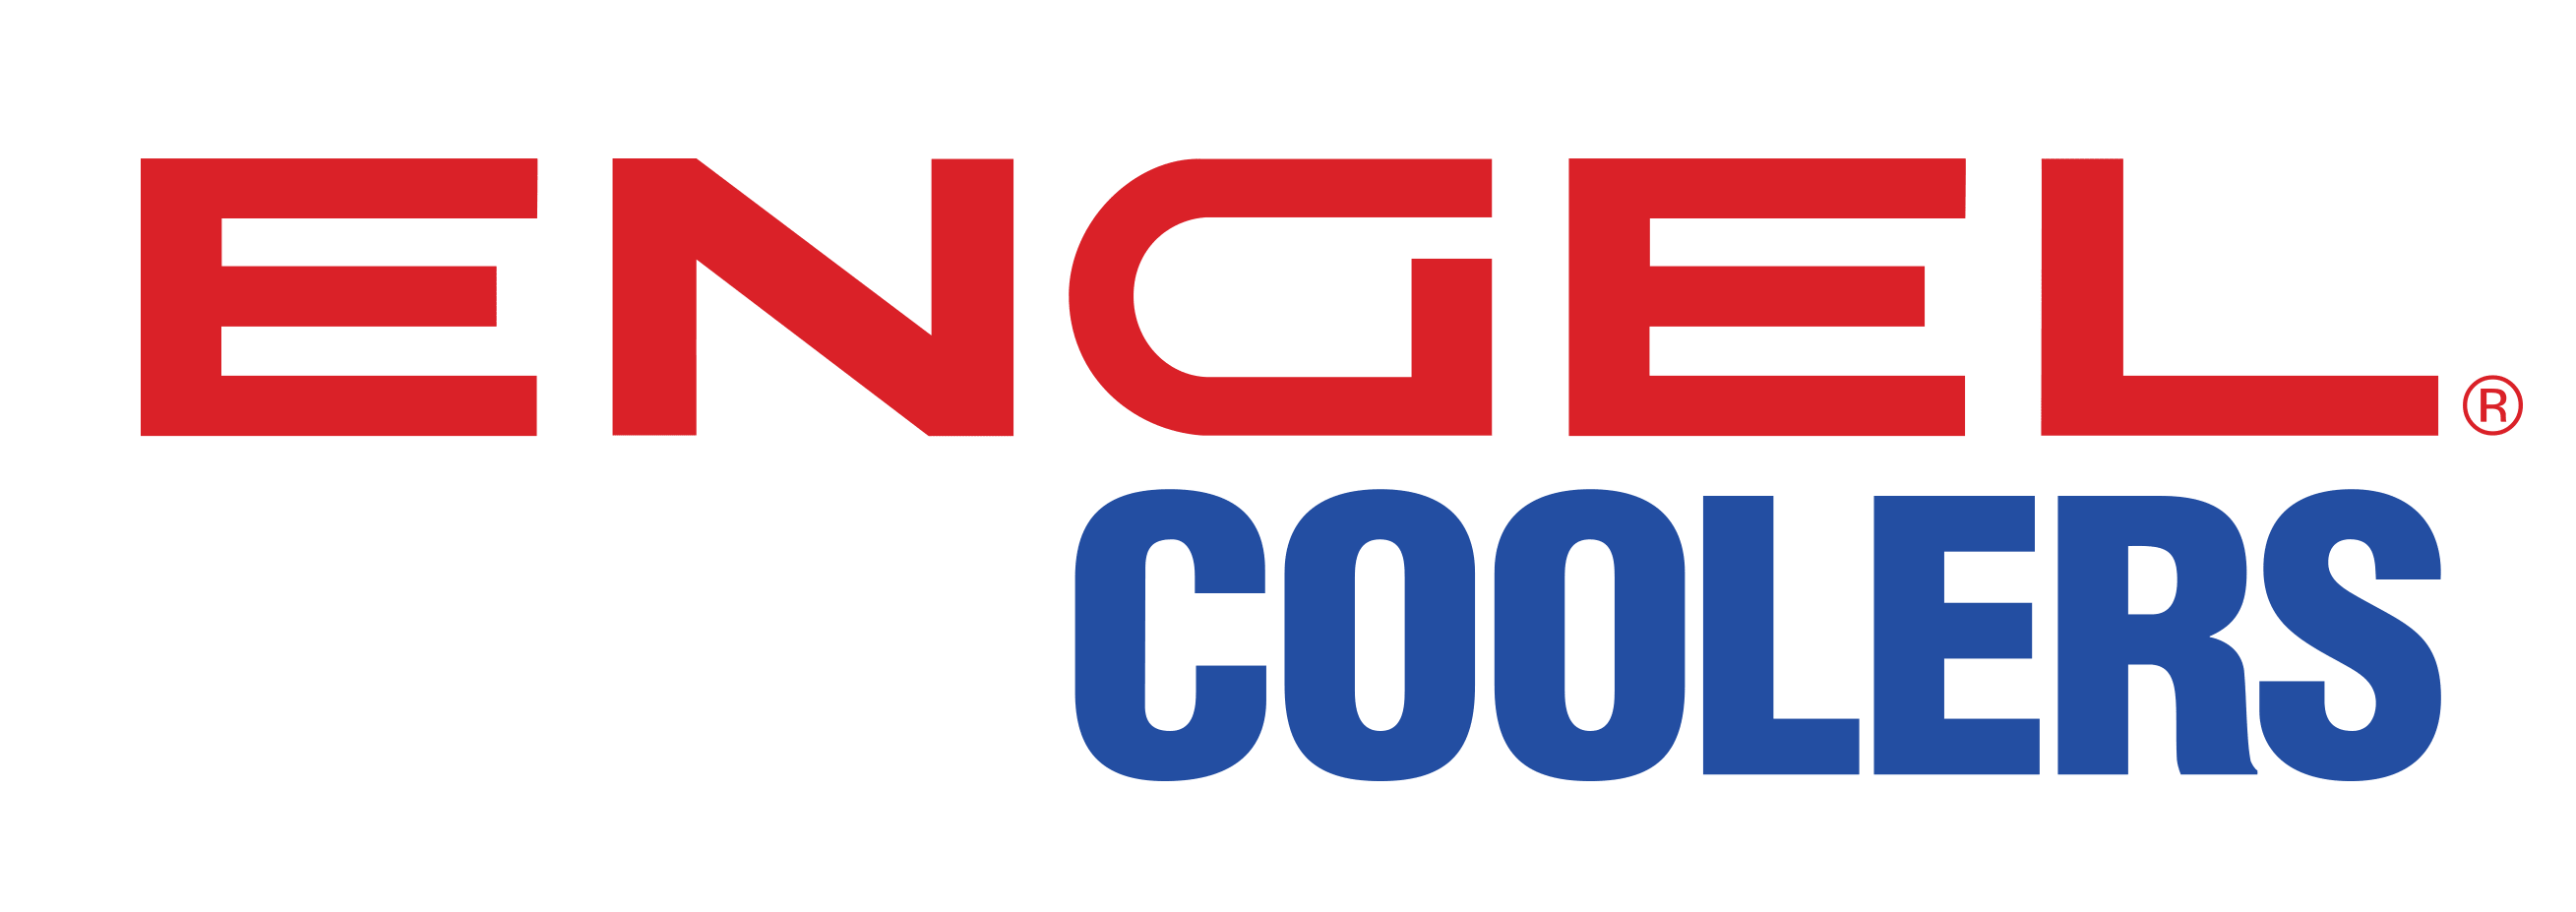 Engel_coolers_RGB